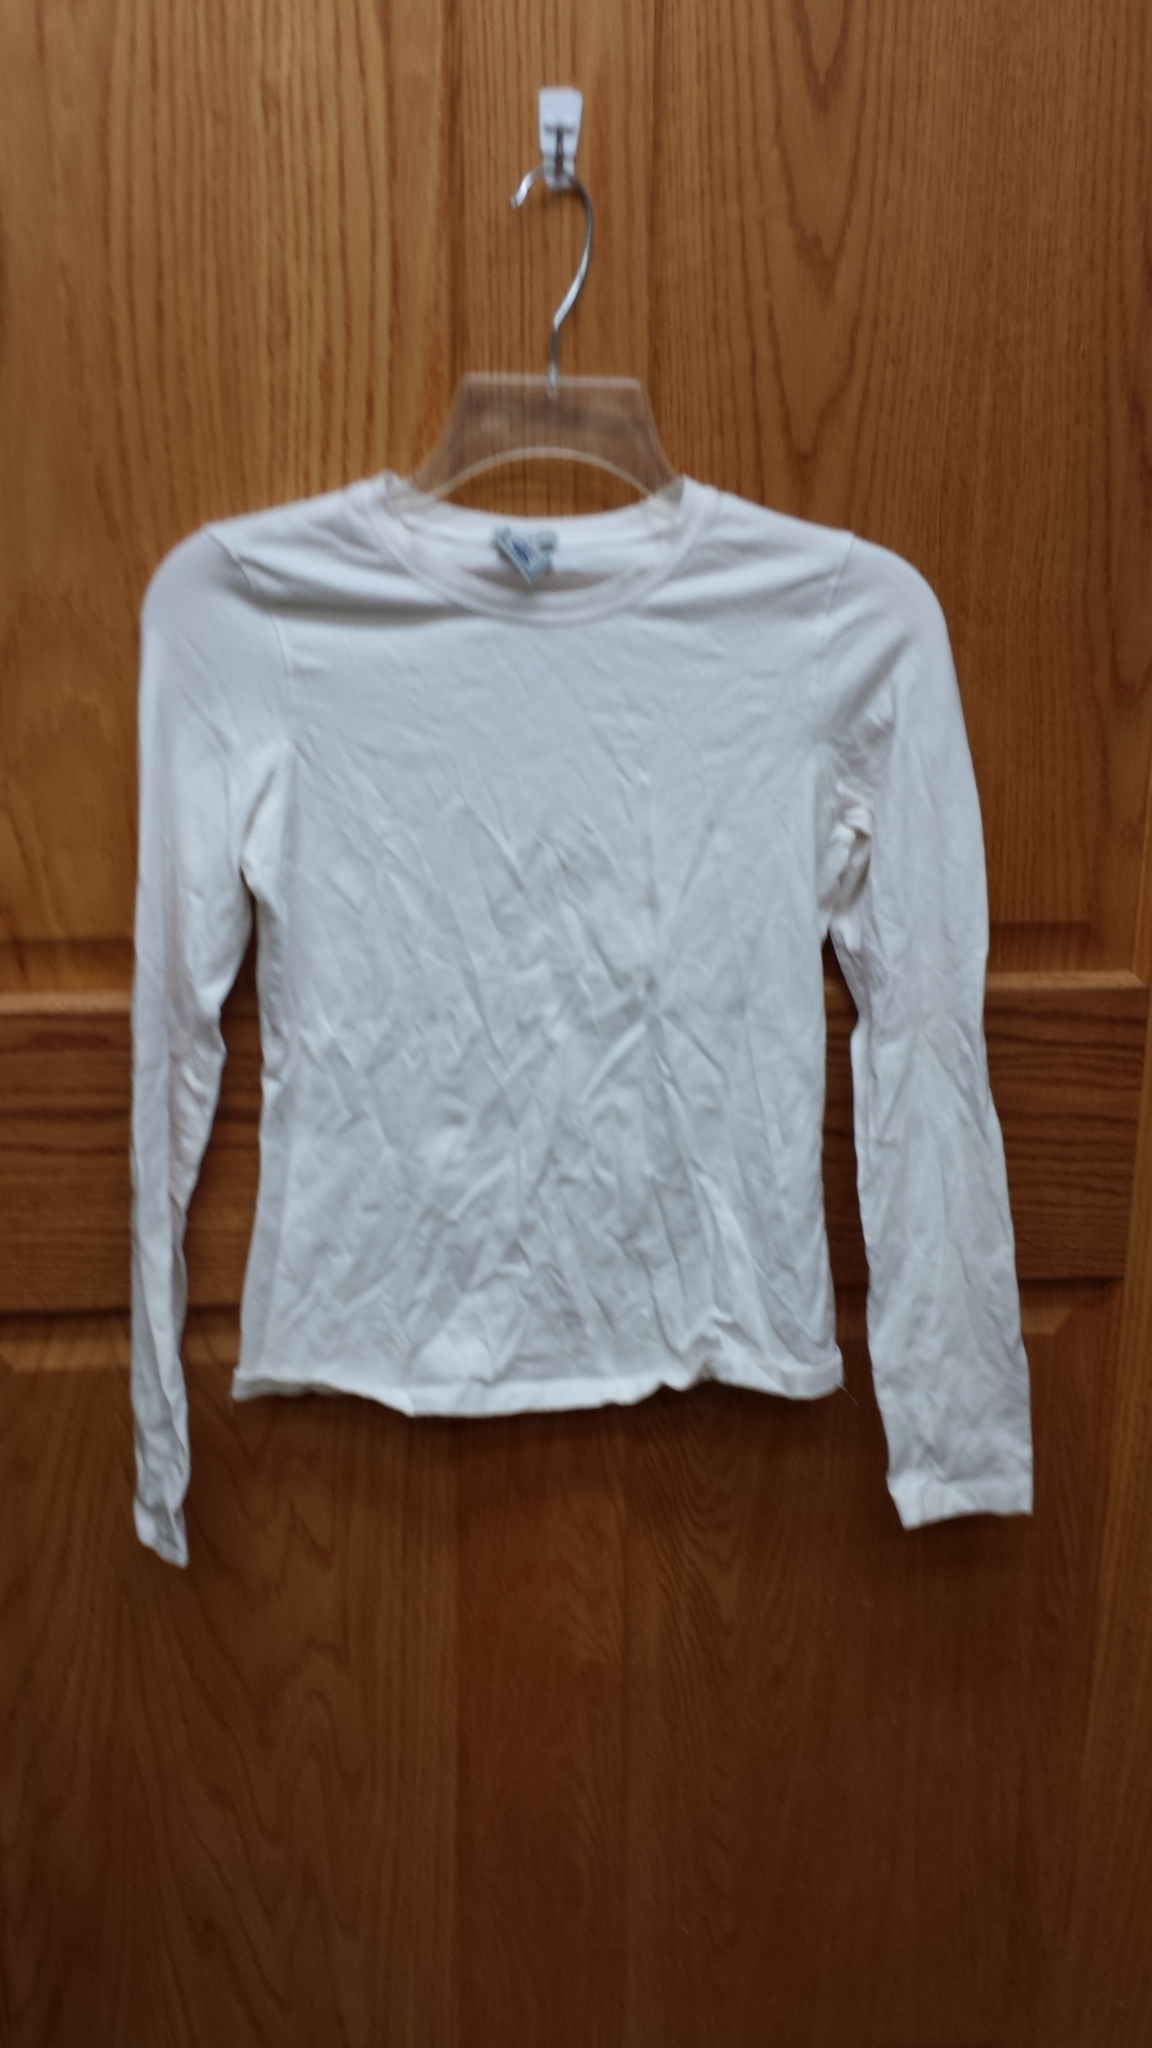 Xs Long Old Navy Size Junior Xs Shirt Long Sleeve White Perfect Fit Stretch